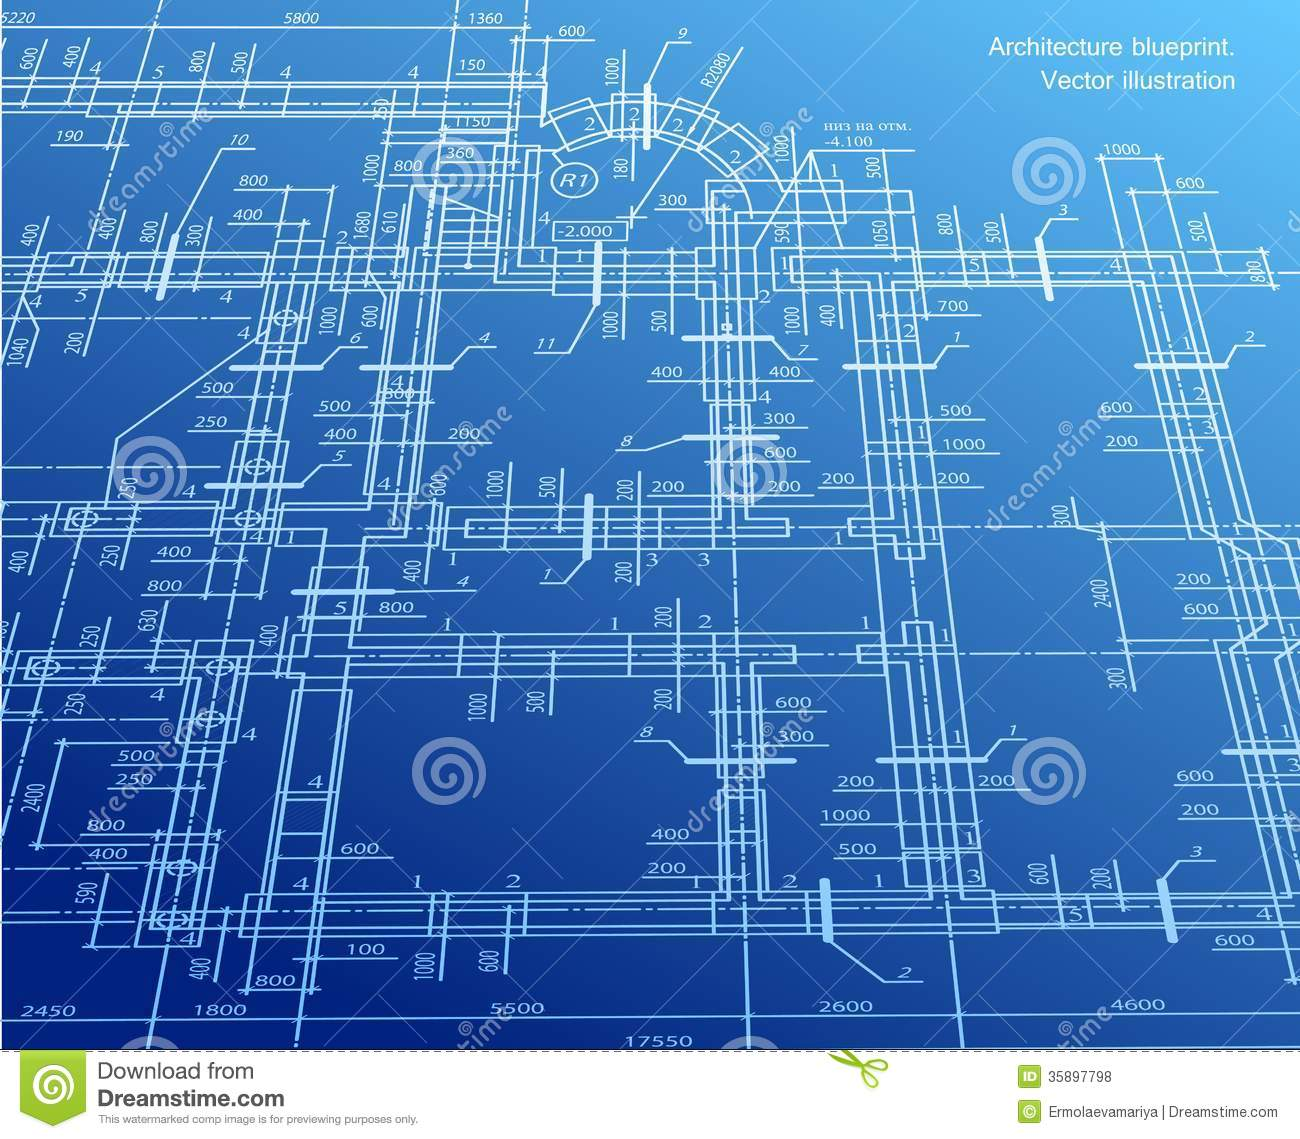 Architecture blueprint background vector royalty free for House blueprint images